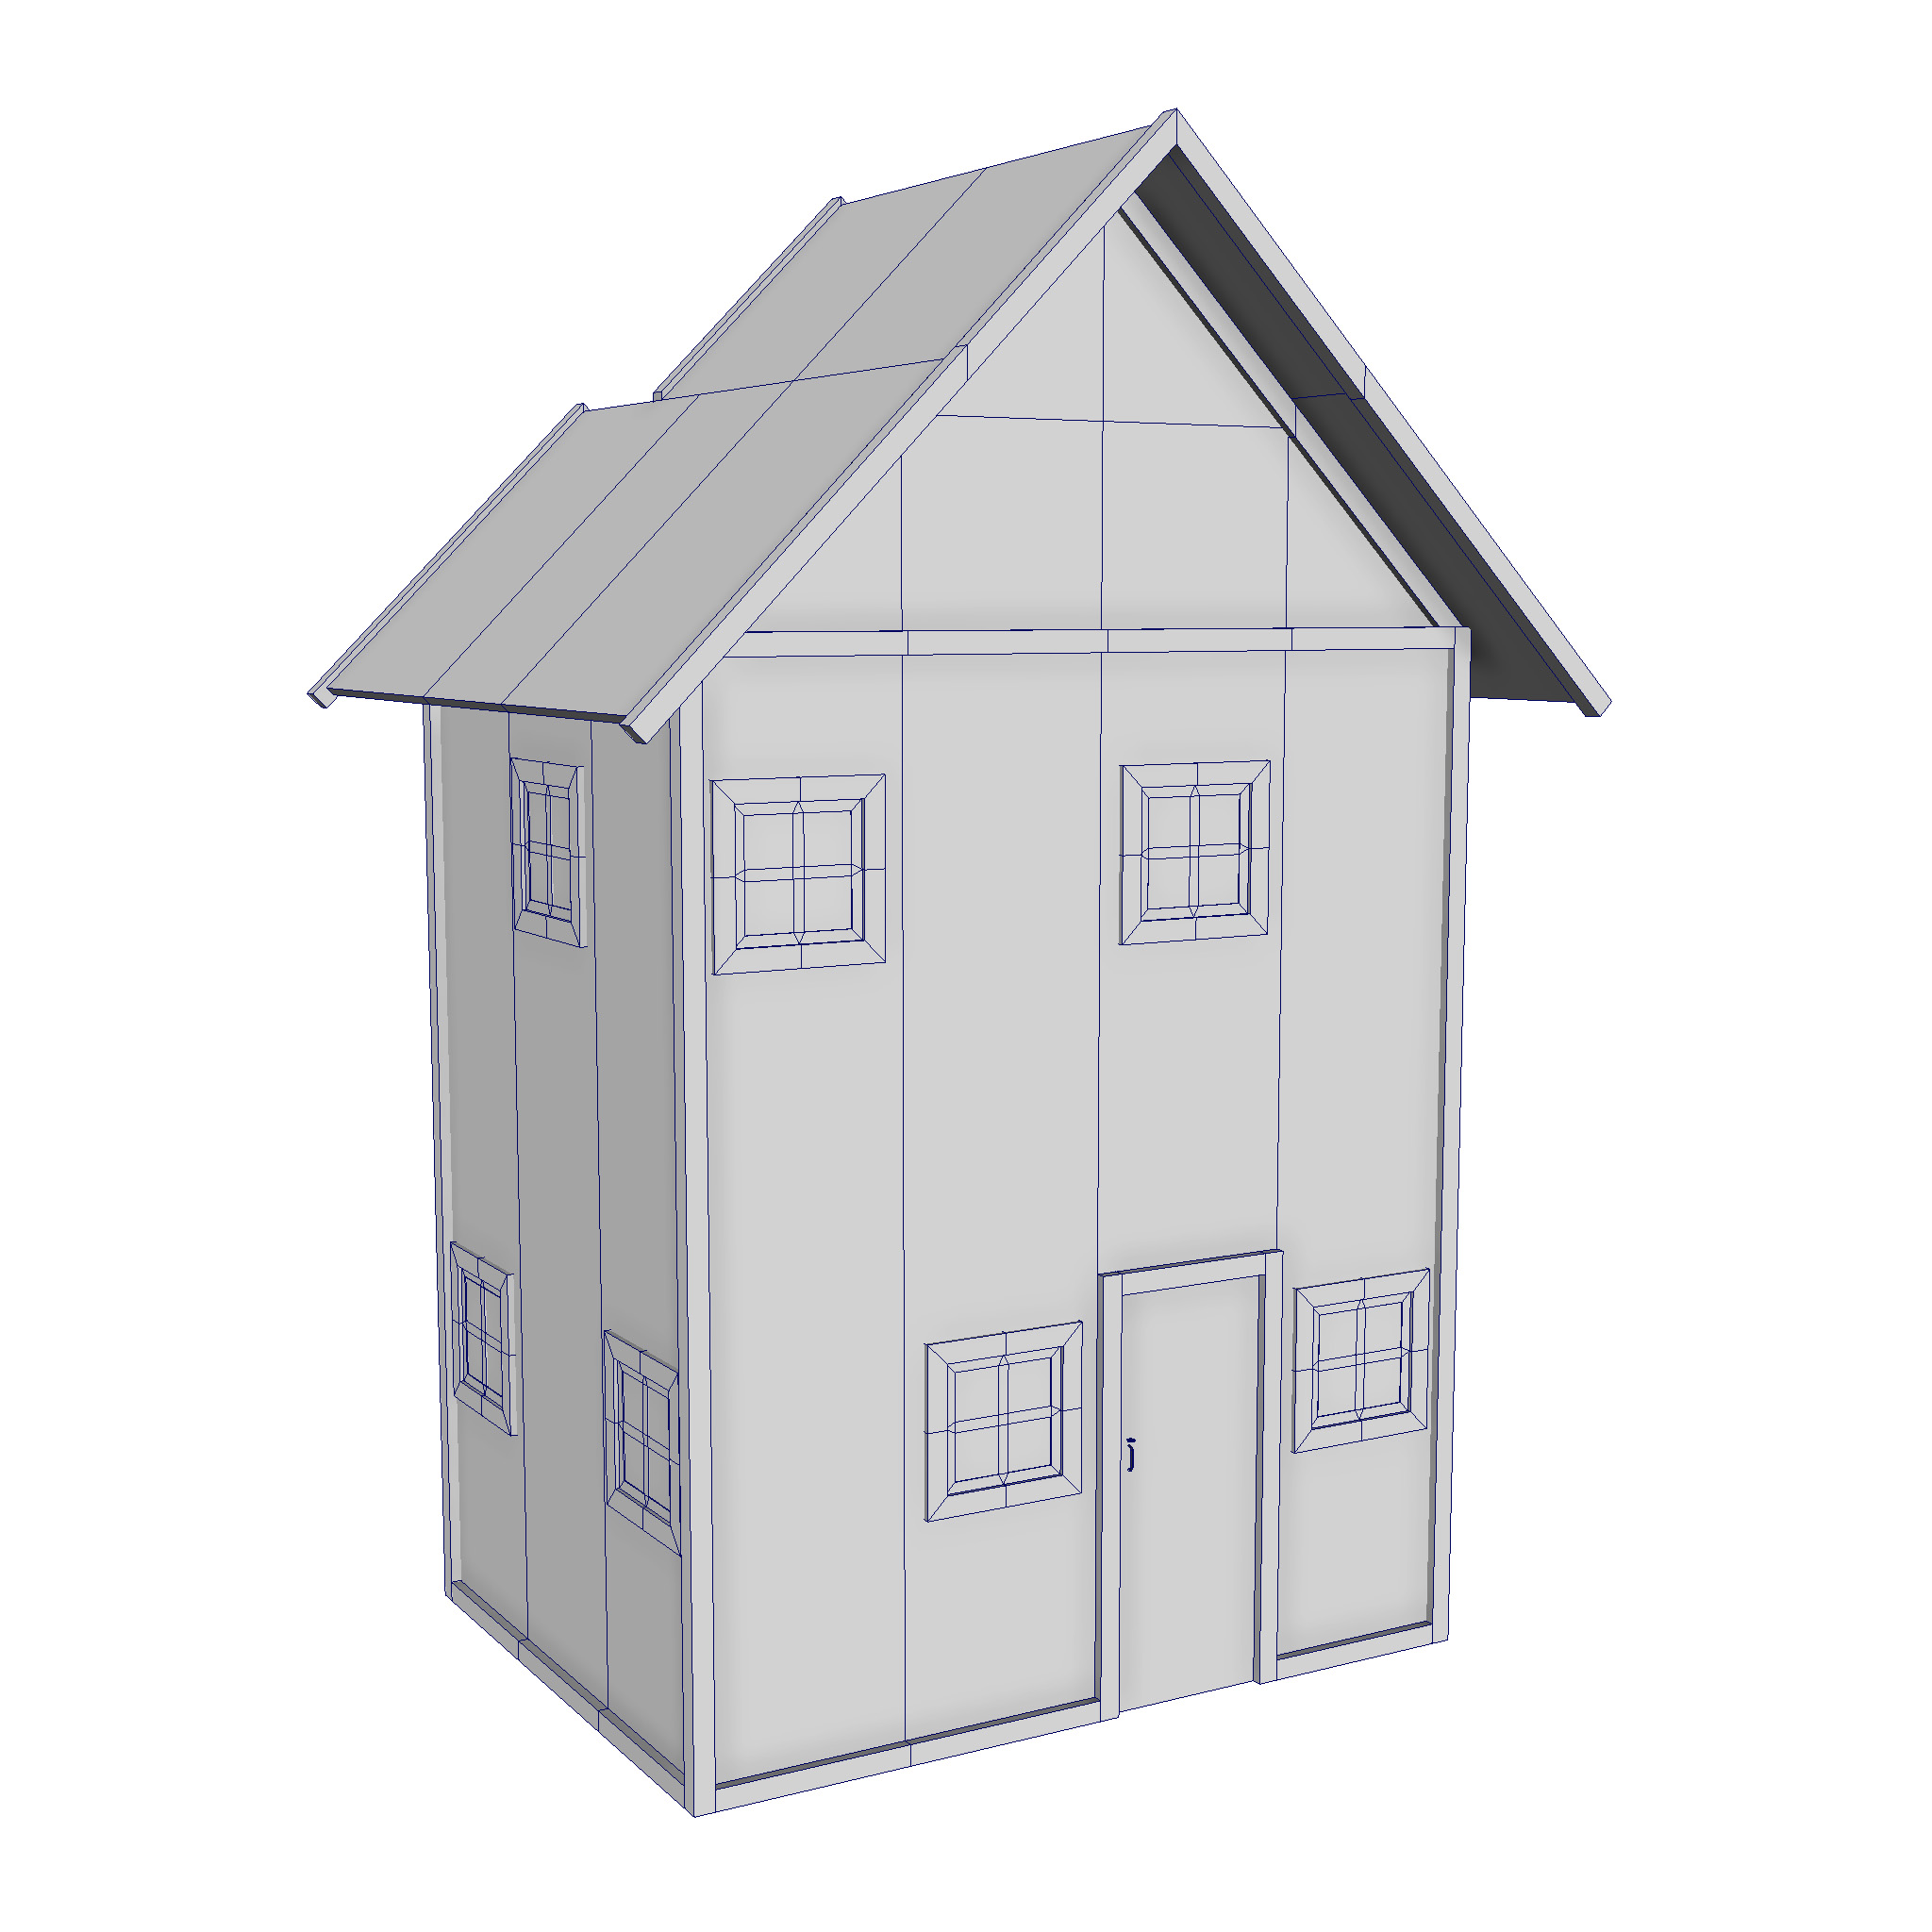 modular wood house set 3d model fbx ma mb 271432